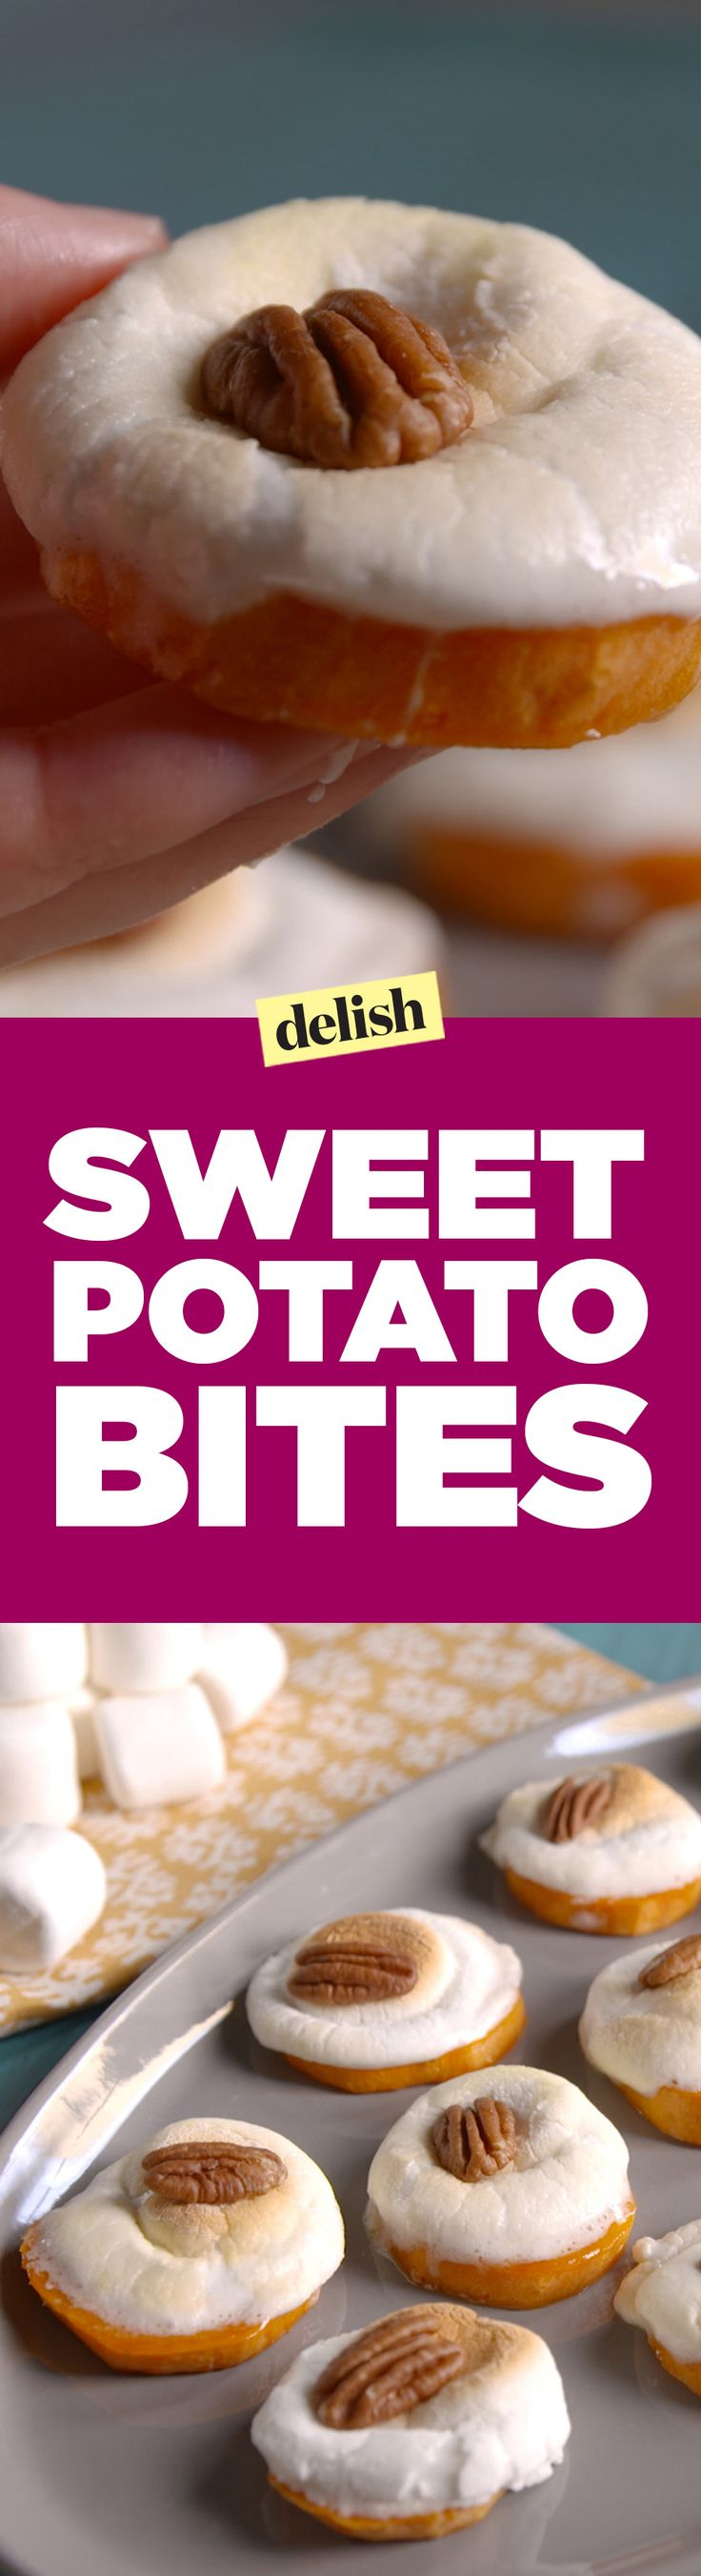 Sweet potato bites are the Thanksgiving app that everyone will be talking about. Get the recipe on Delish.com.